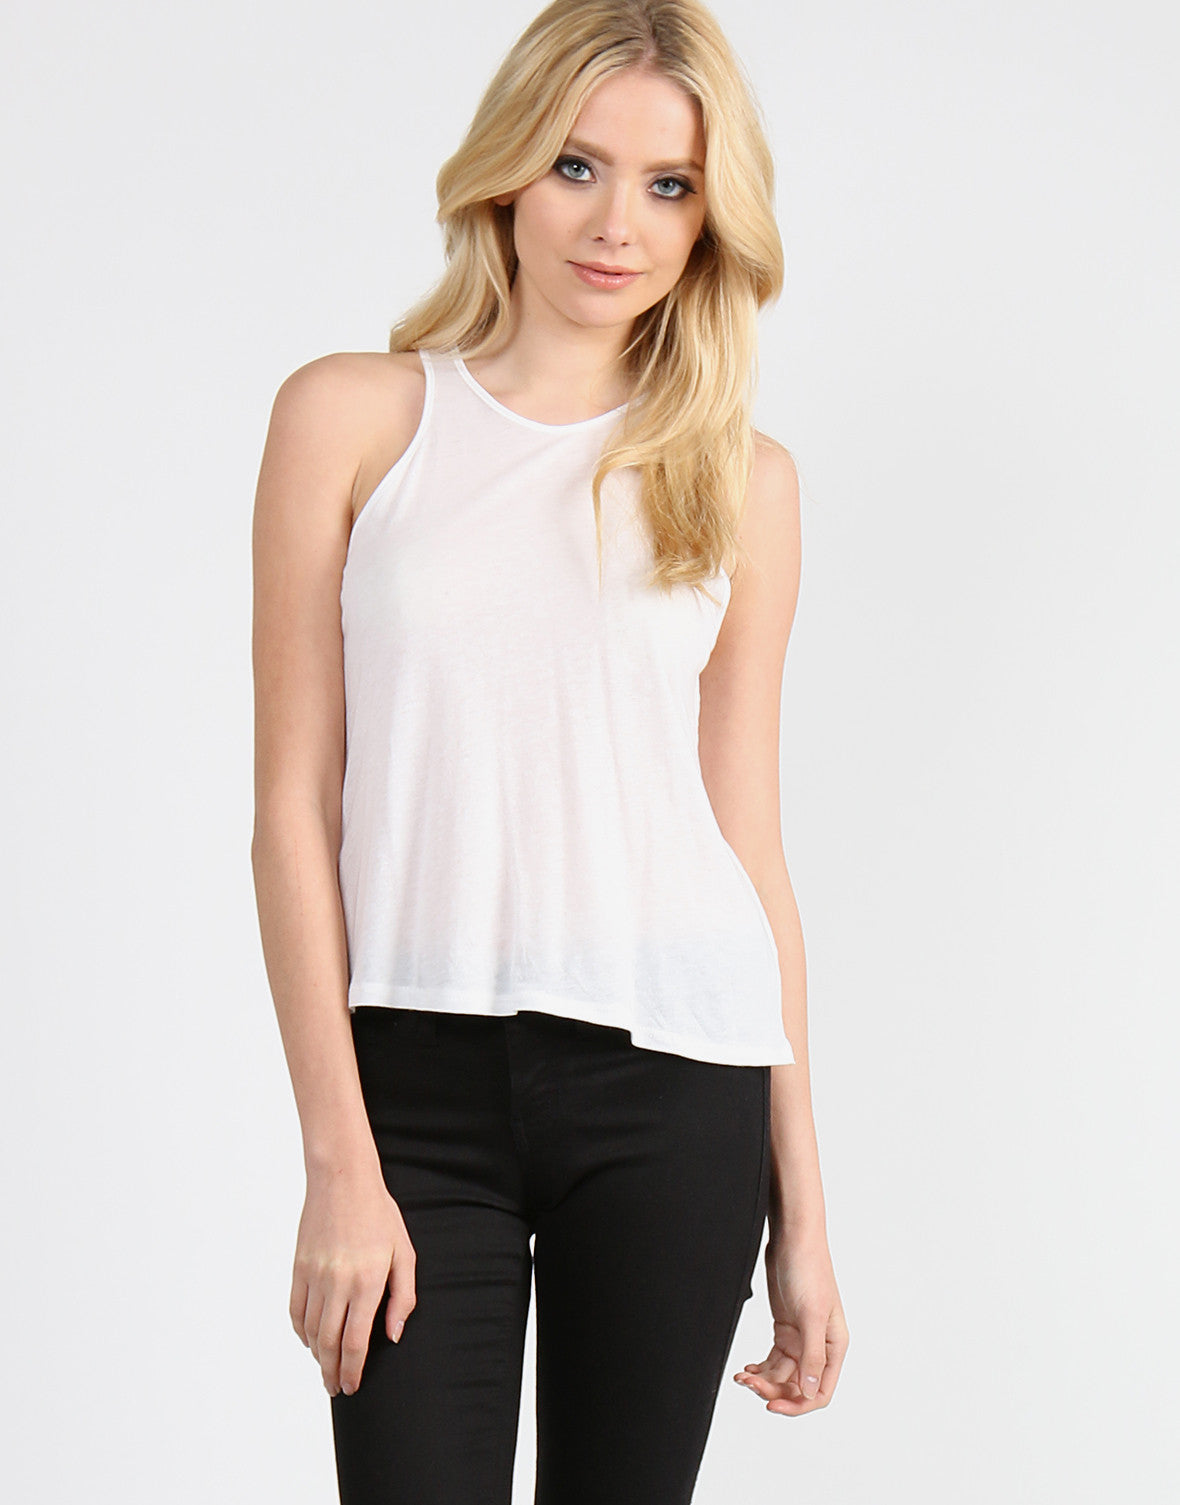 Your Basic Tank - White - 2020AVE